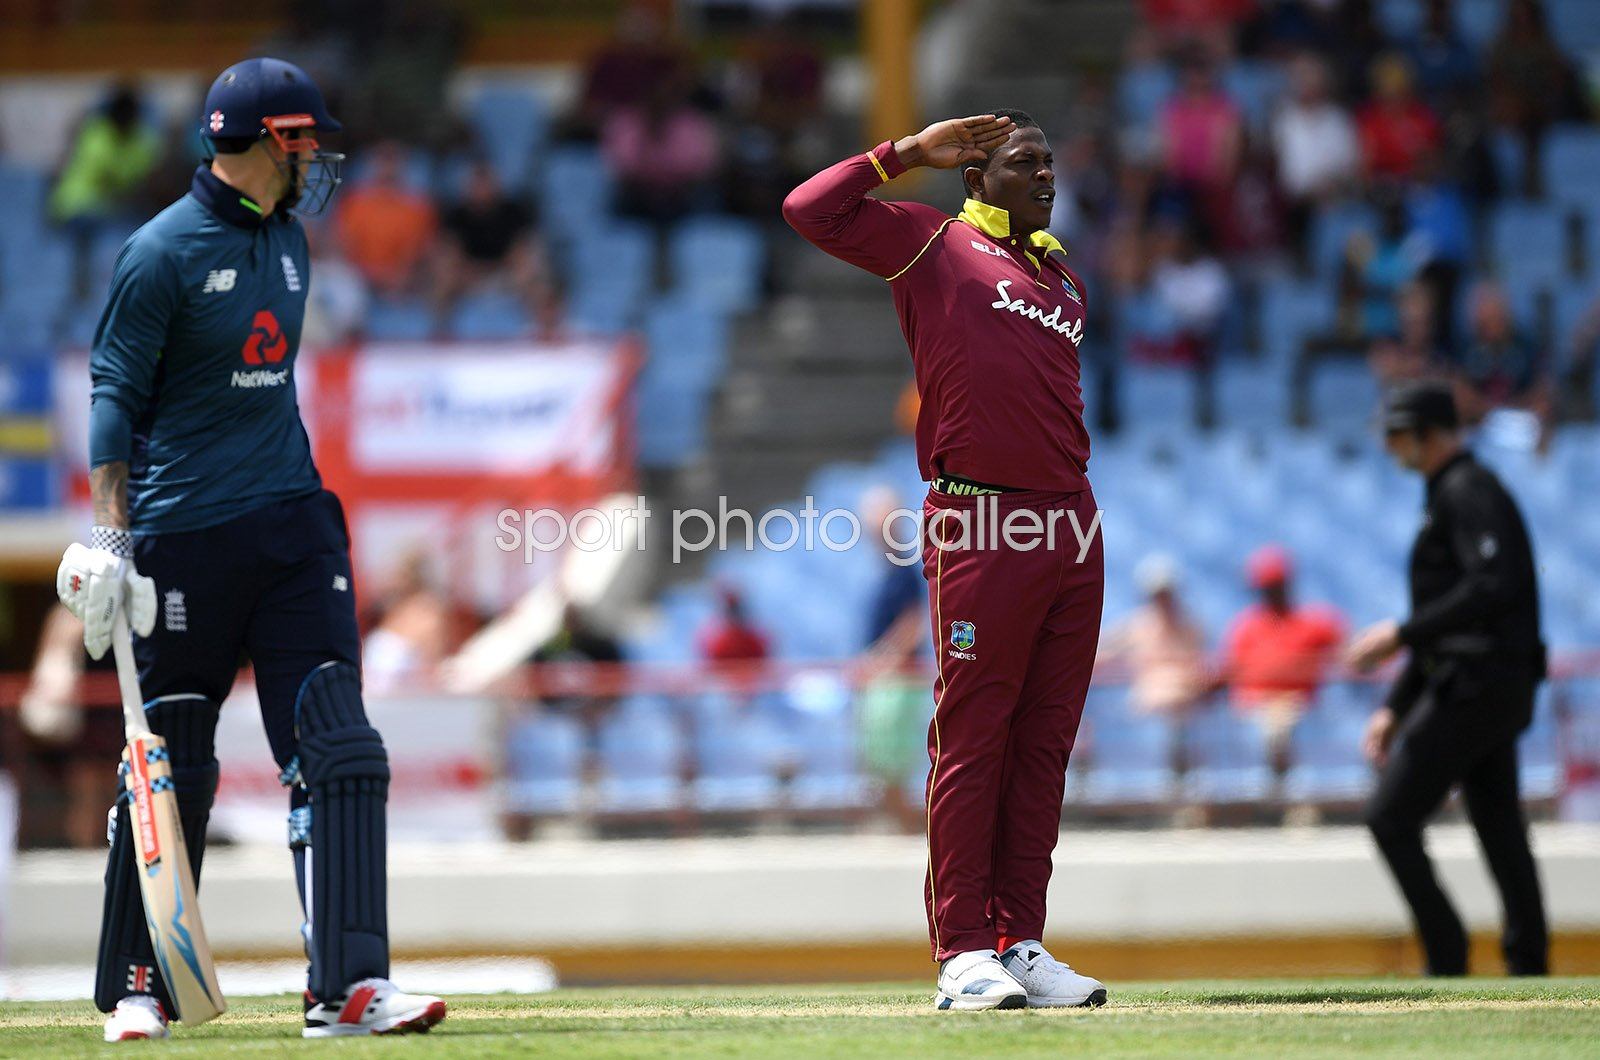 Sheldon Cottrell West Indies Trademark Wicket Celebration St Lucia 2019